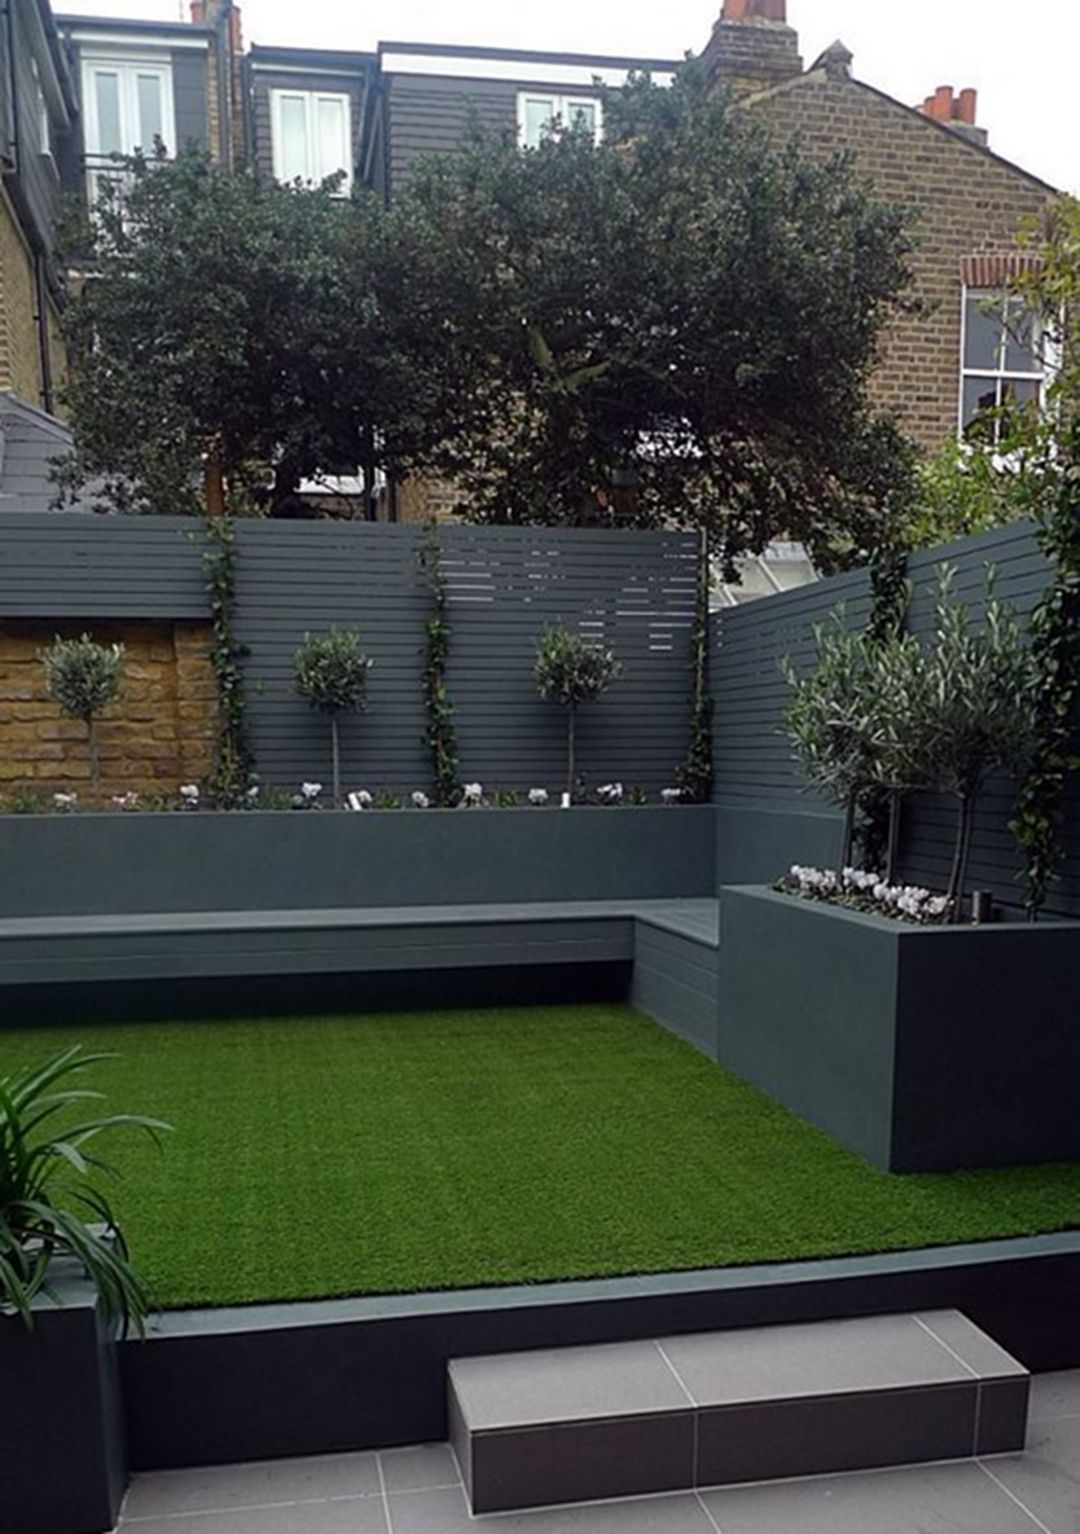 45 Gorgeous Small Garden Design With Low Cost Monthly Maintenance Small Courtyard Gardens Modern Garden Design Courtyard Gardens Design